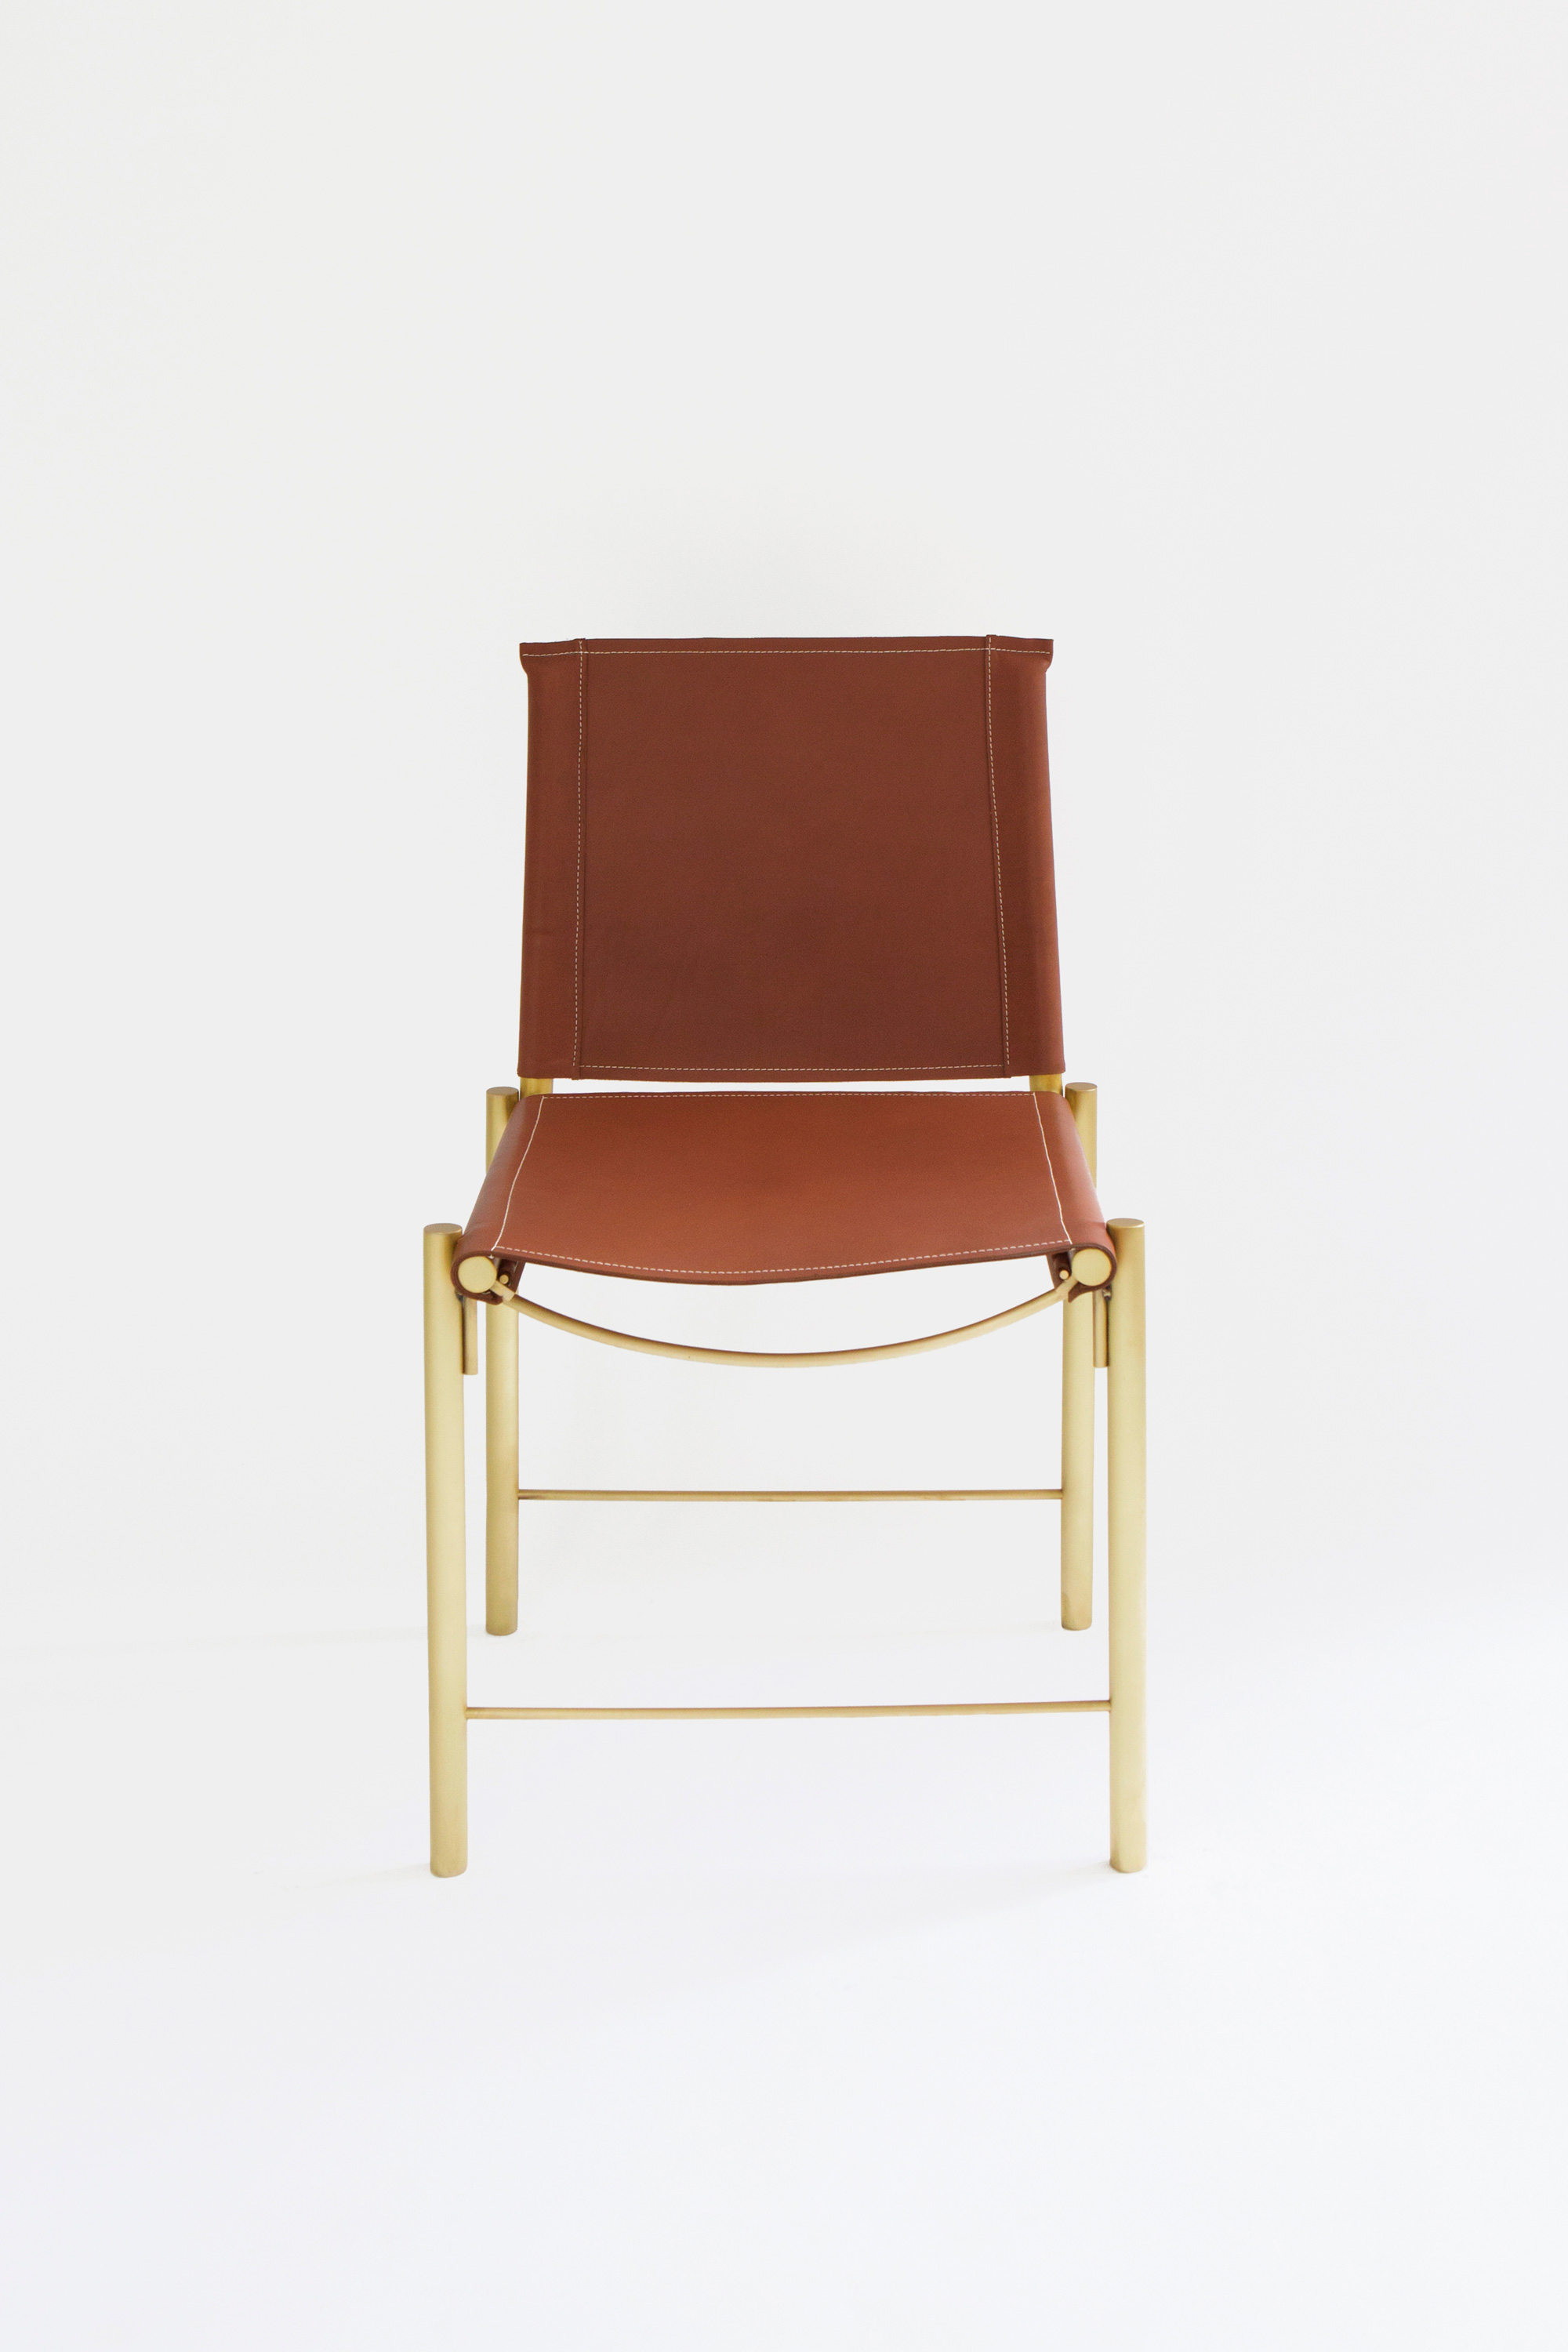 SKStudio_Chair_Brown_Gold_Ecomm_Front_MilenaMallory.jpg